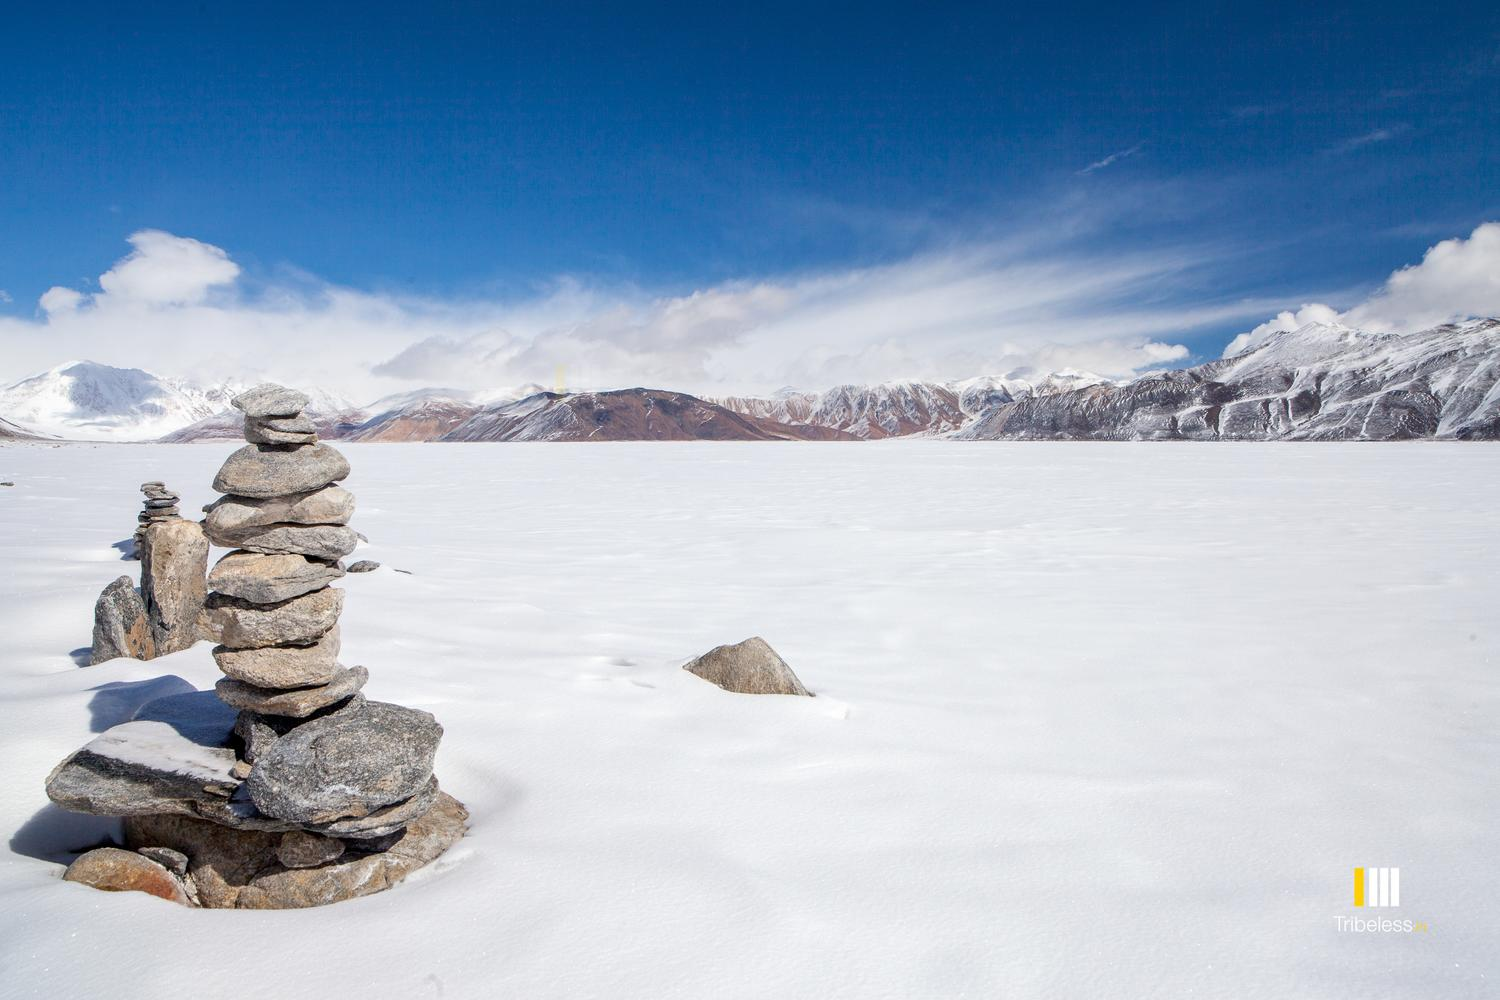 The frozen expanse of the Pangong lake.